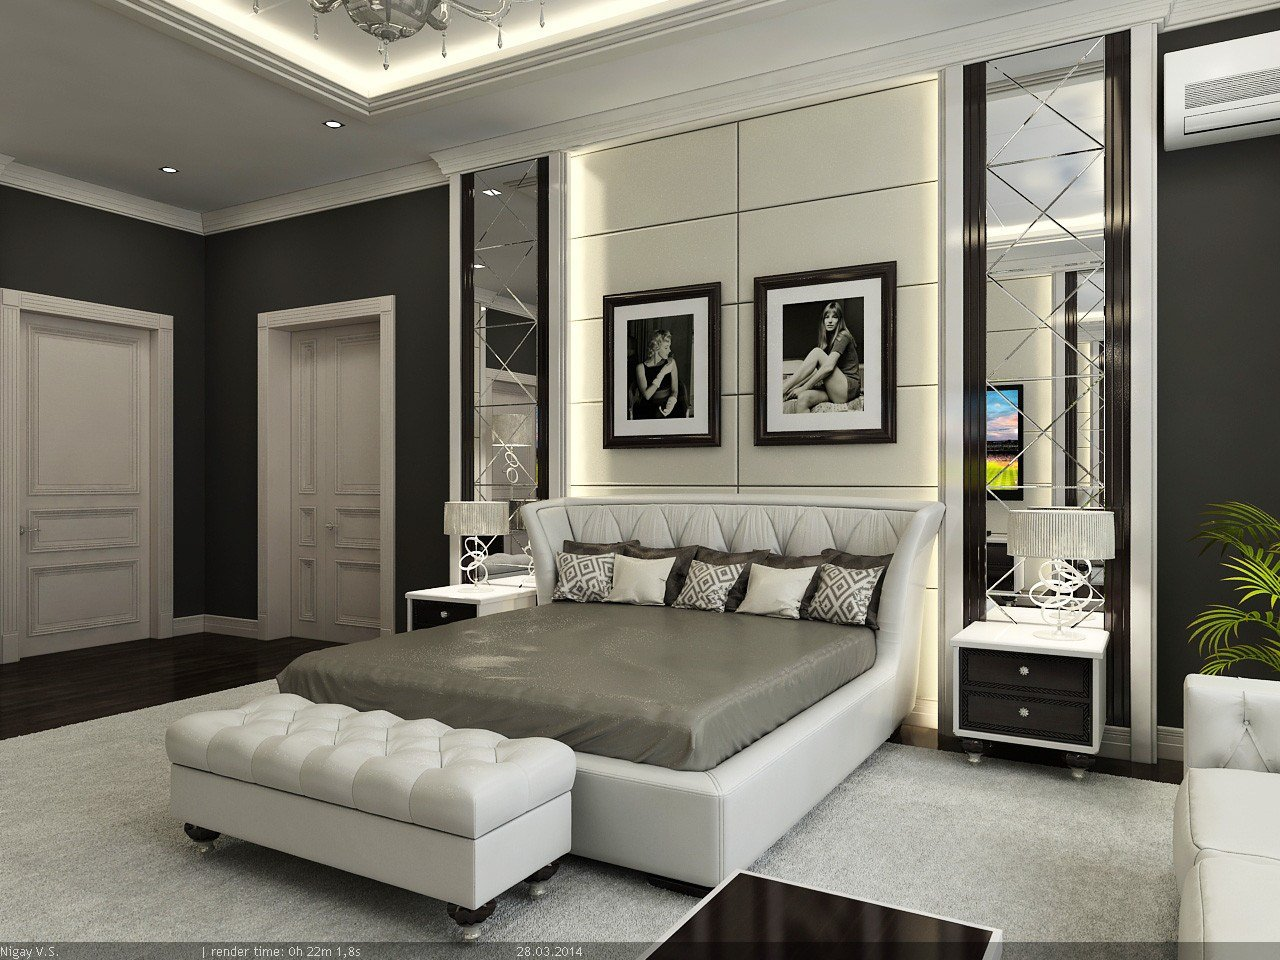 Best Interior Master Bedroom 3D Model With Pictures